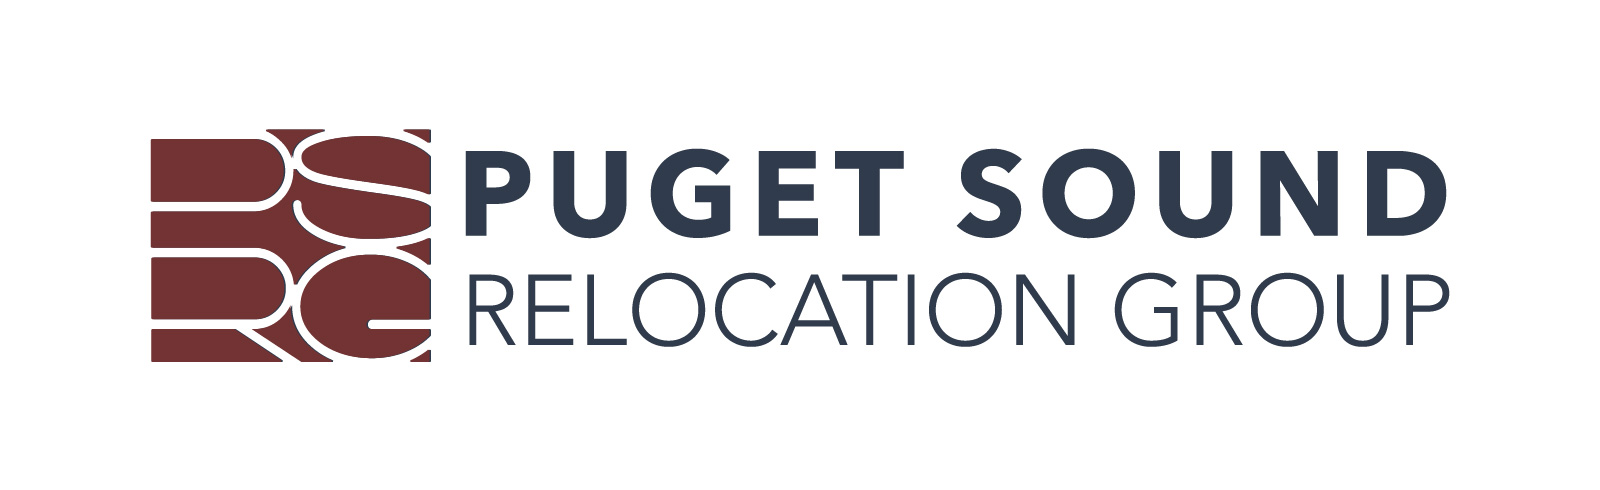 Puget Sound Relocation Group ⋆ SeaMonster Studios